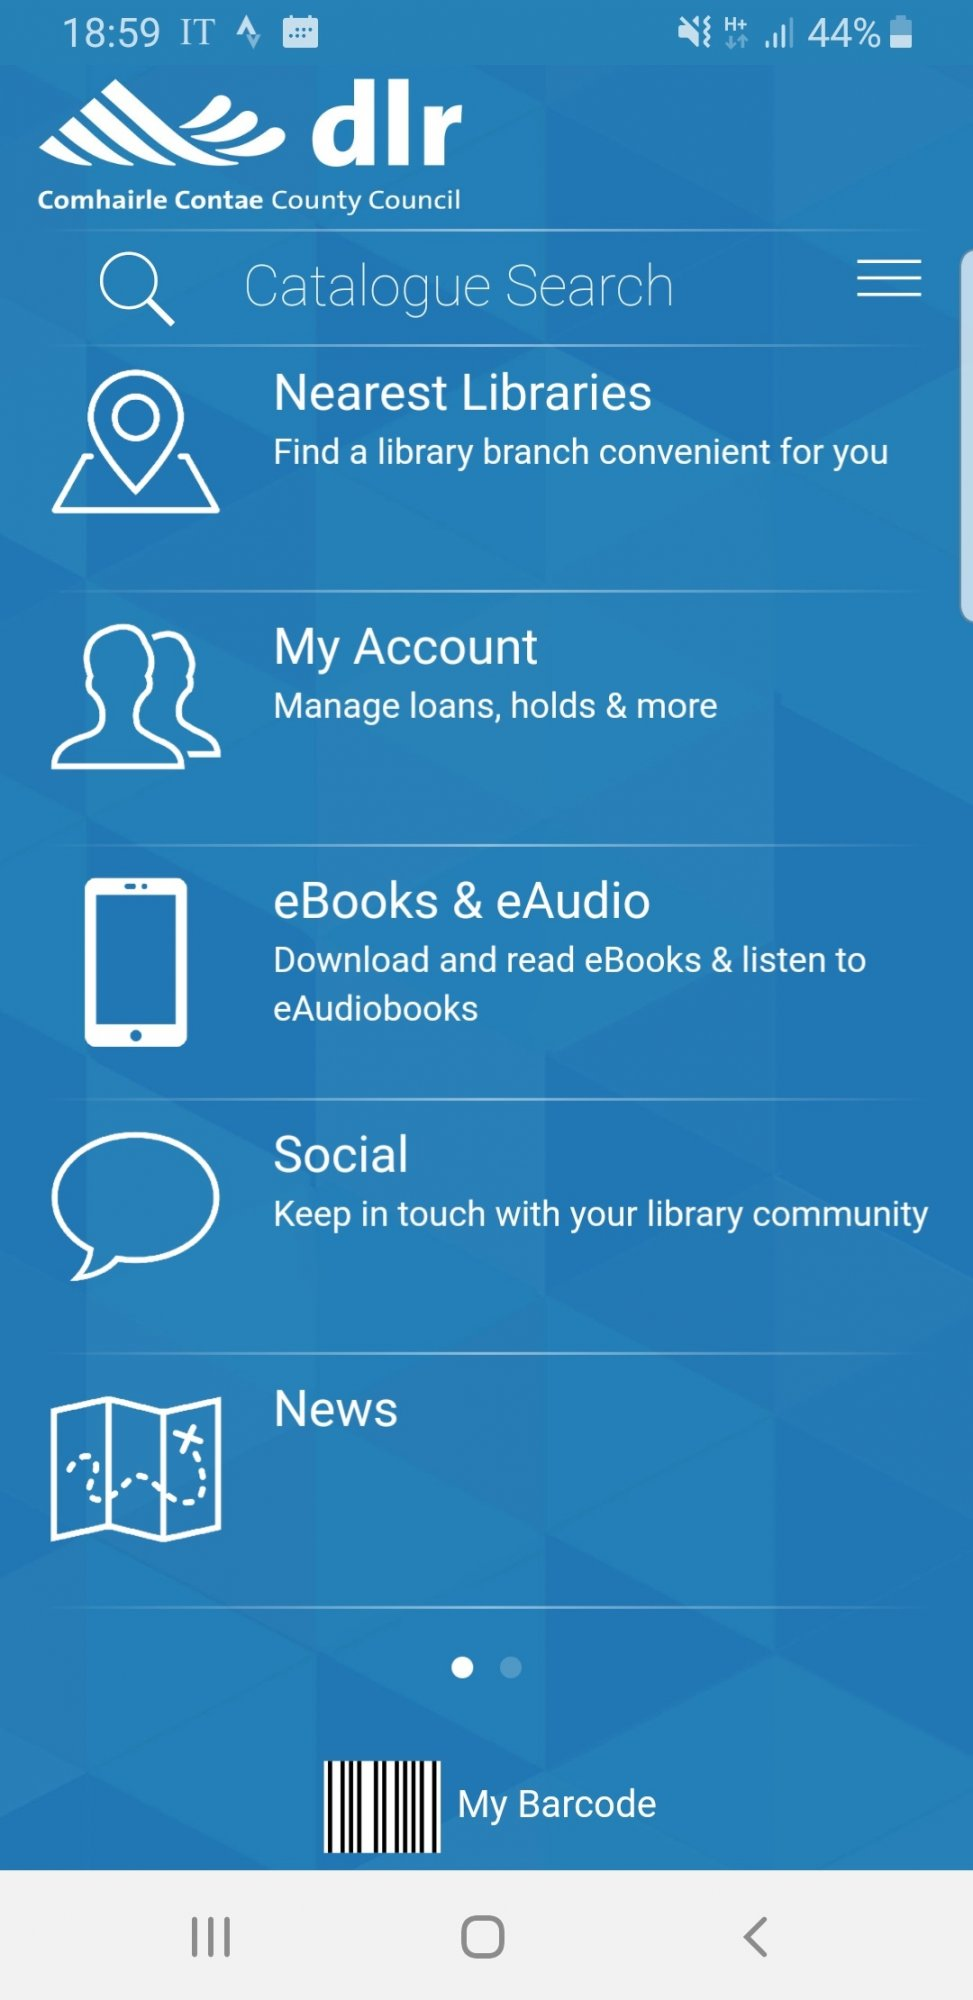 dlr Libraries new Android app | dlr LIBRARIES